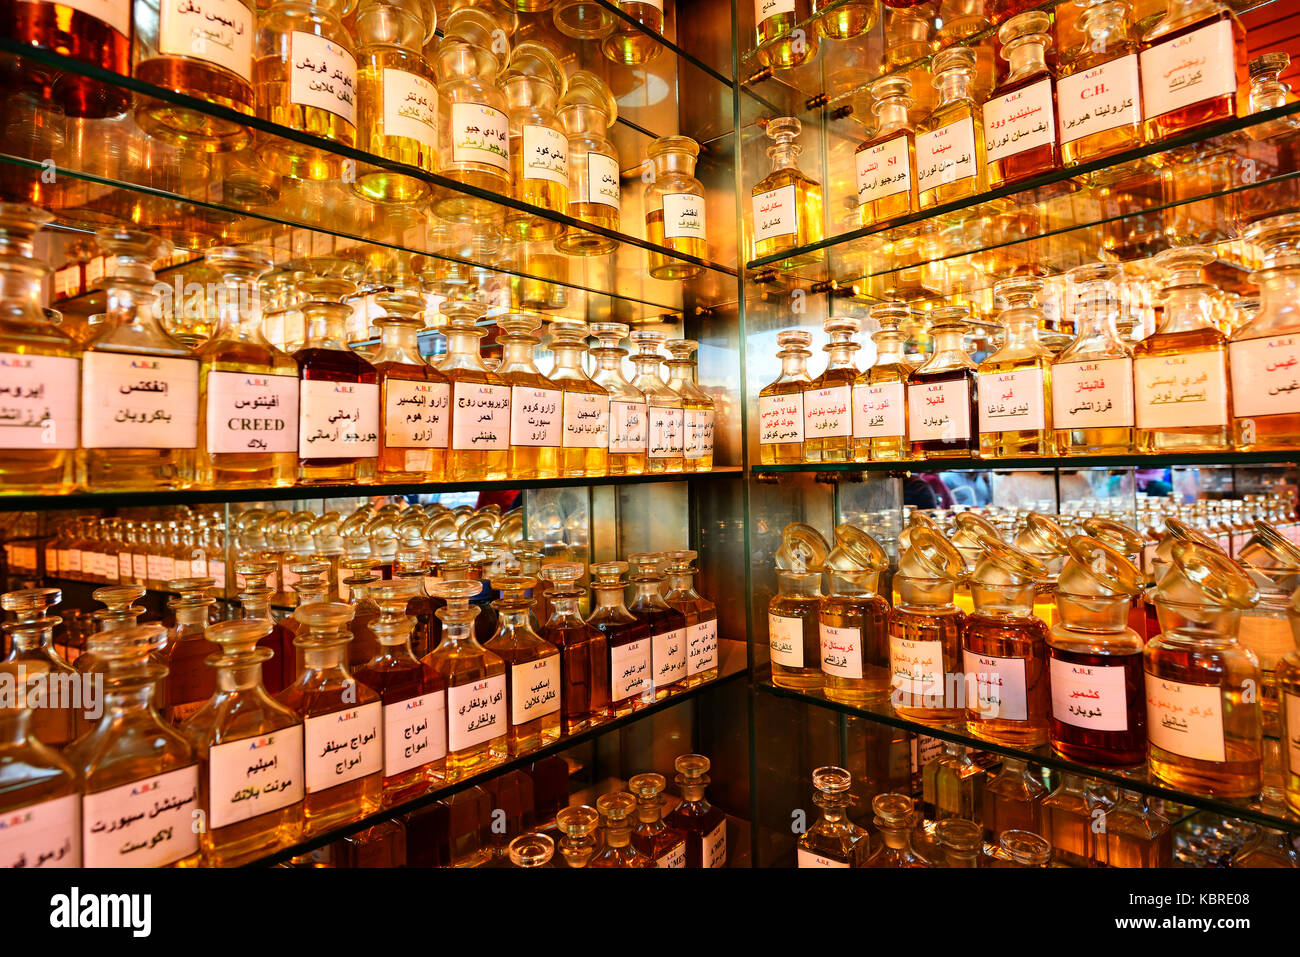 Boutique de parfum, Amman, Jordanie Photo Stock